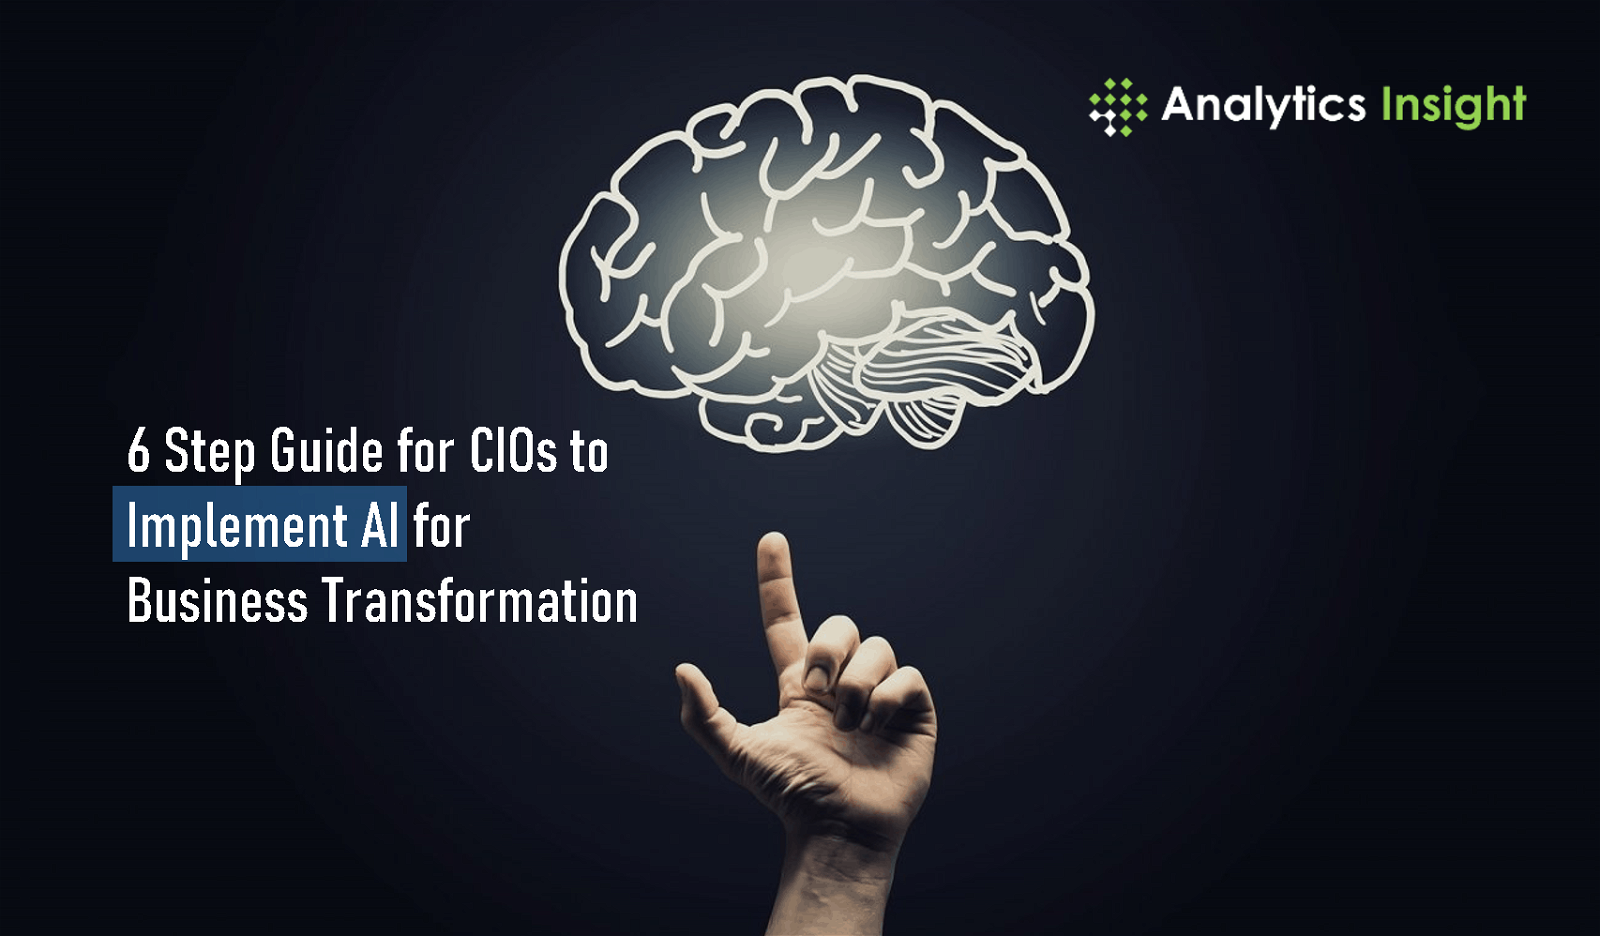 CIOs to Implement AI for Business Transformation